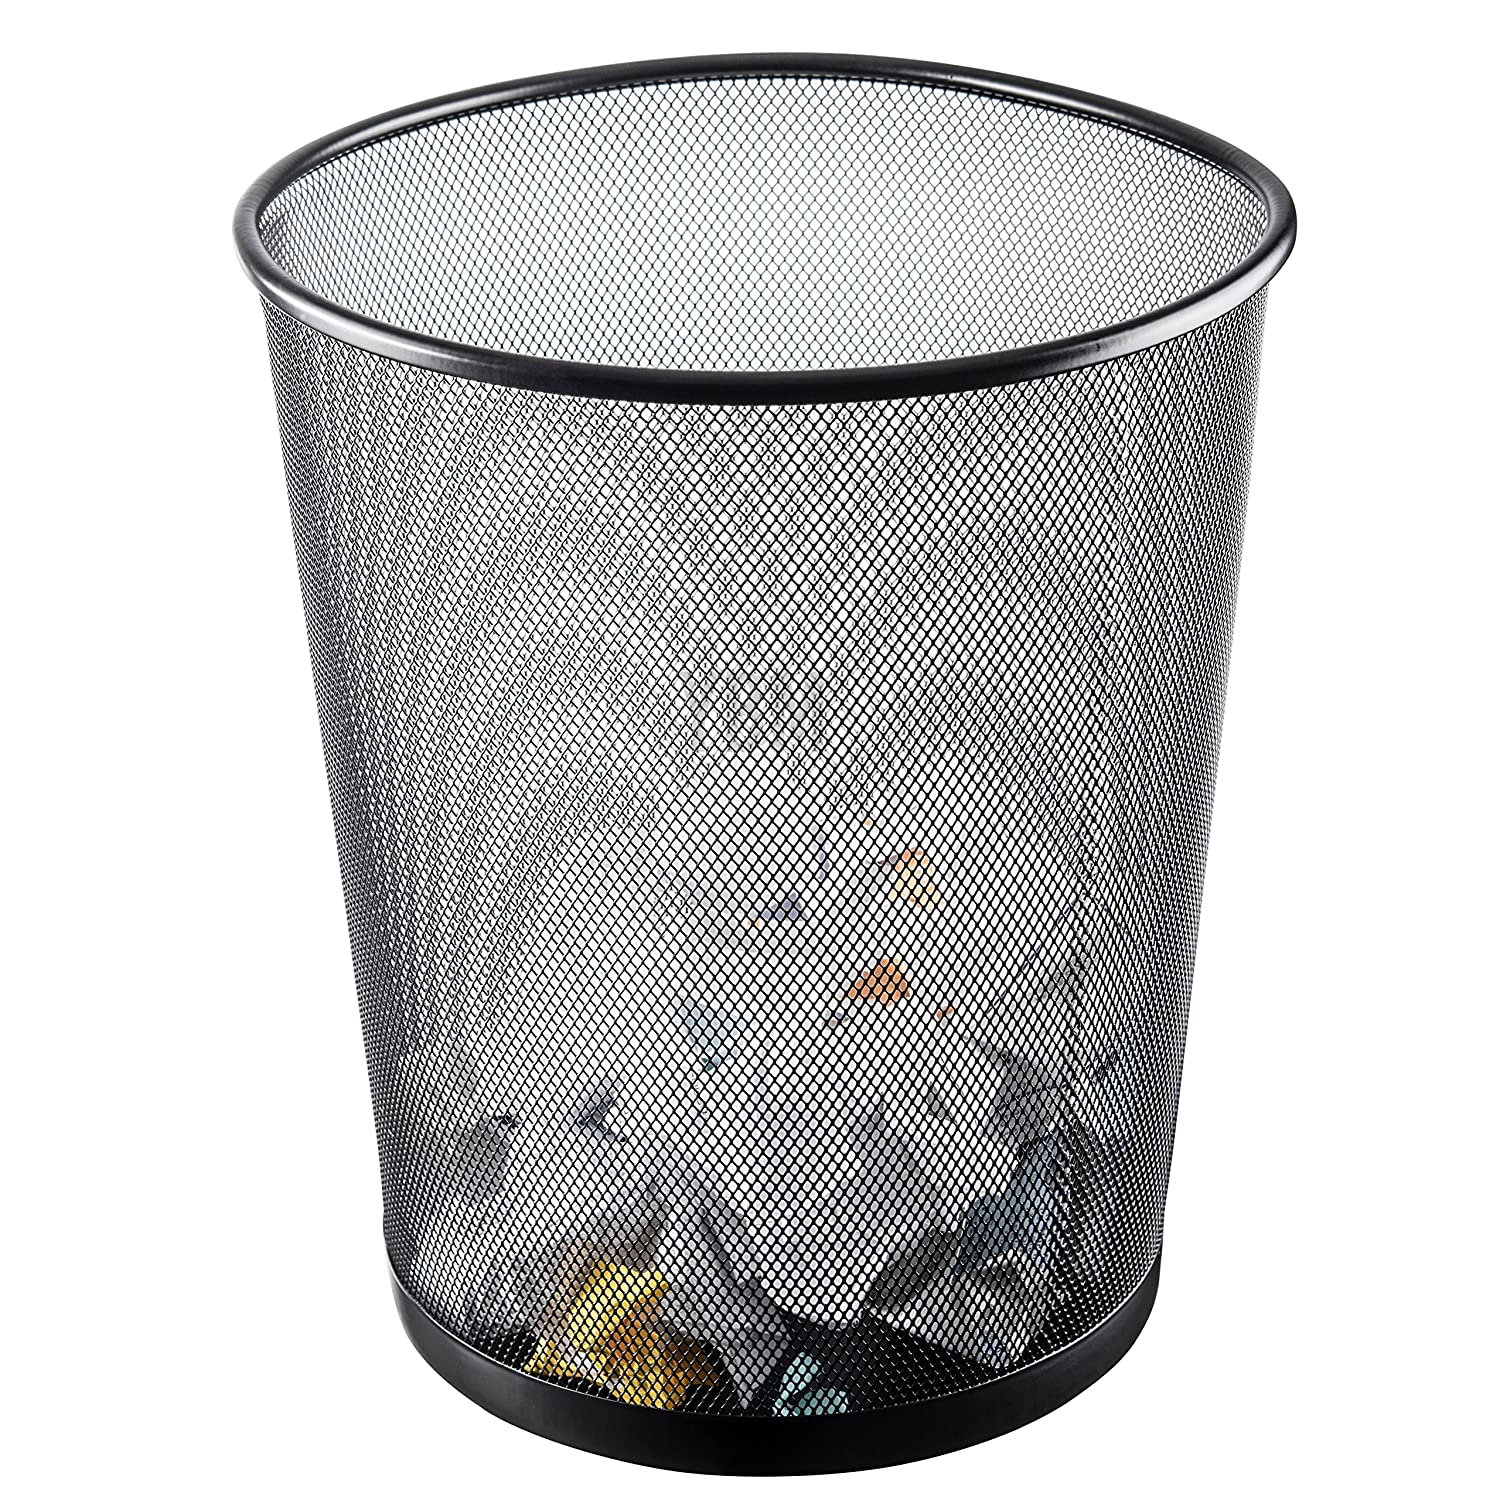 Ybmhome Steel Mesh Round Open Top Waste Basket Bin Trash Can for Office Home 2485 1, Silver